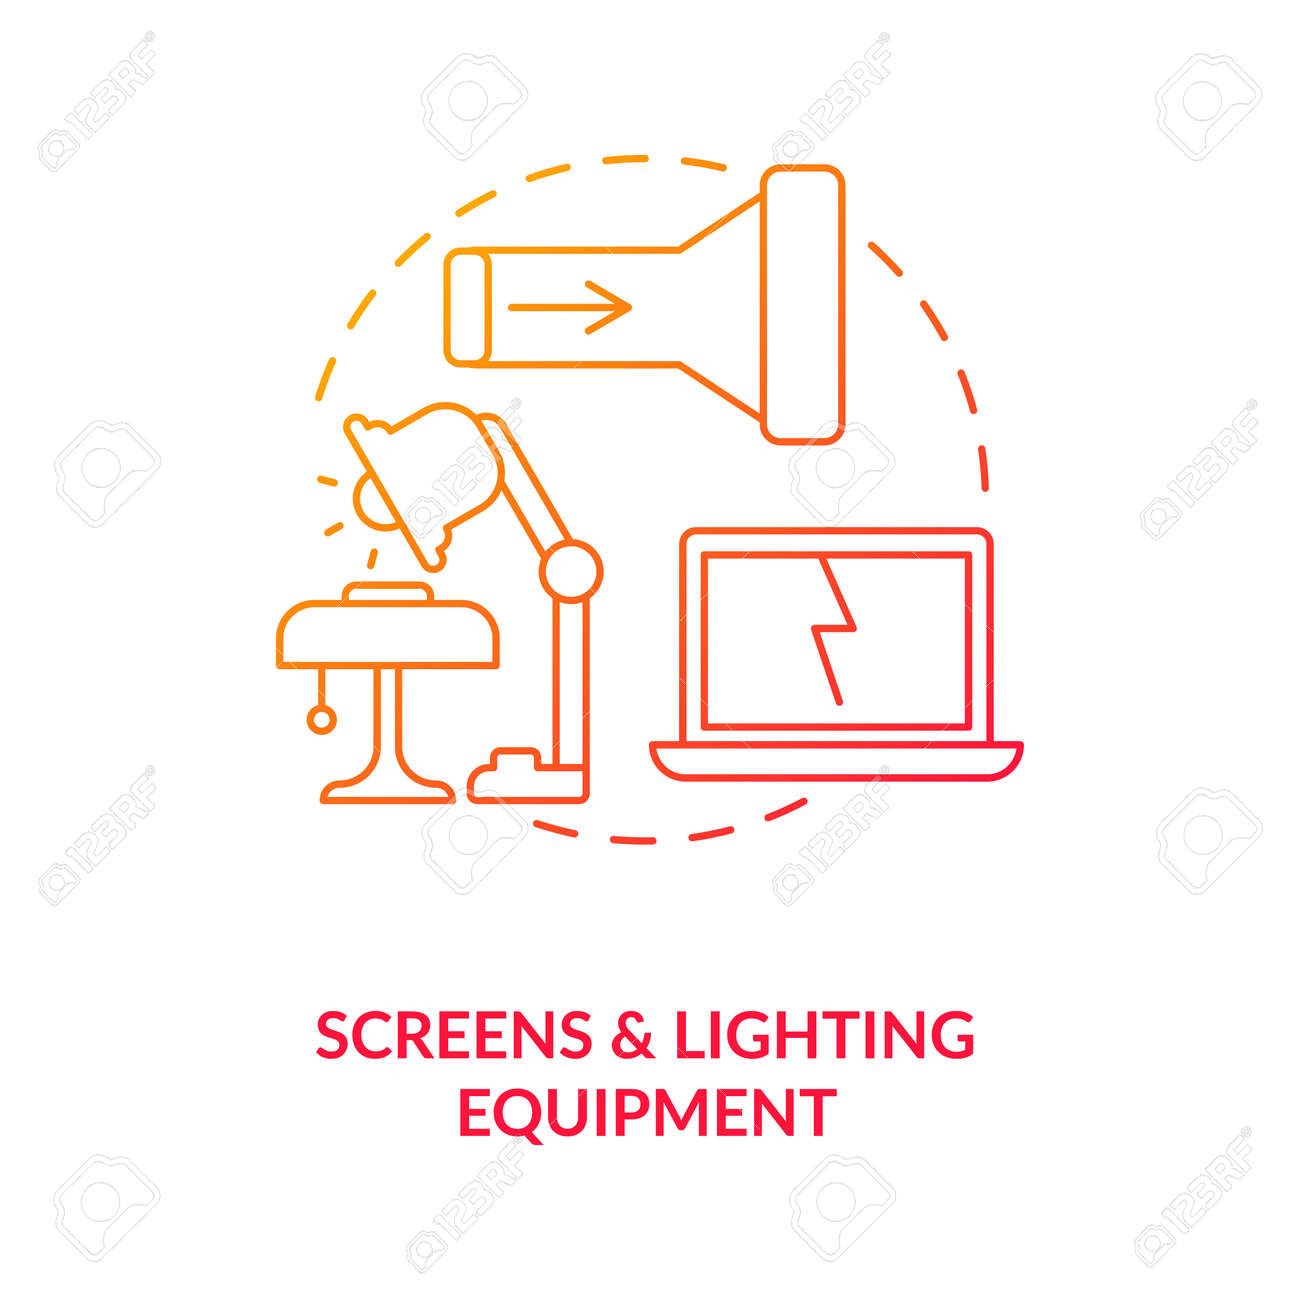 Screens and lighting equipment concept icon. E-waste category idea thin line illustration. Televisions, monitors. Laptops, notebooks. Throwing electronics. Vector isolated outline RGB color drawing - 167538746